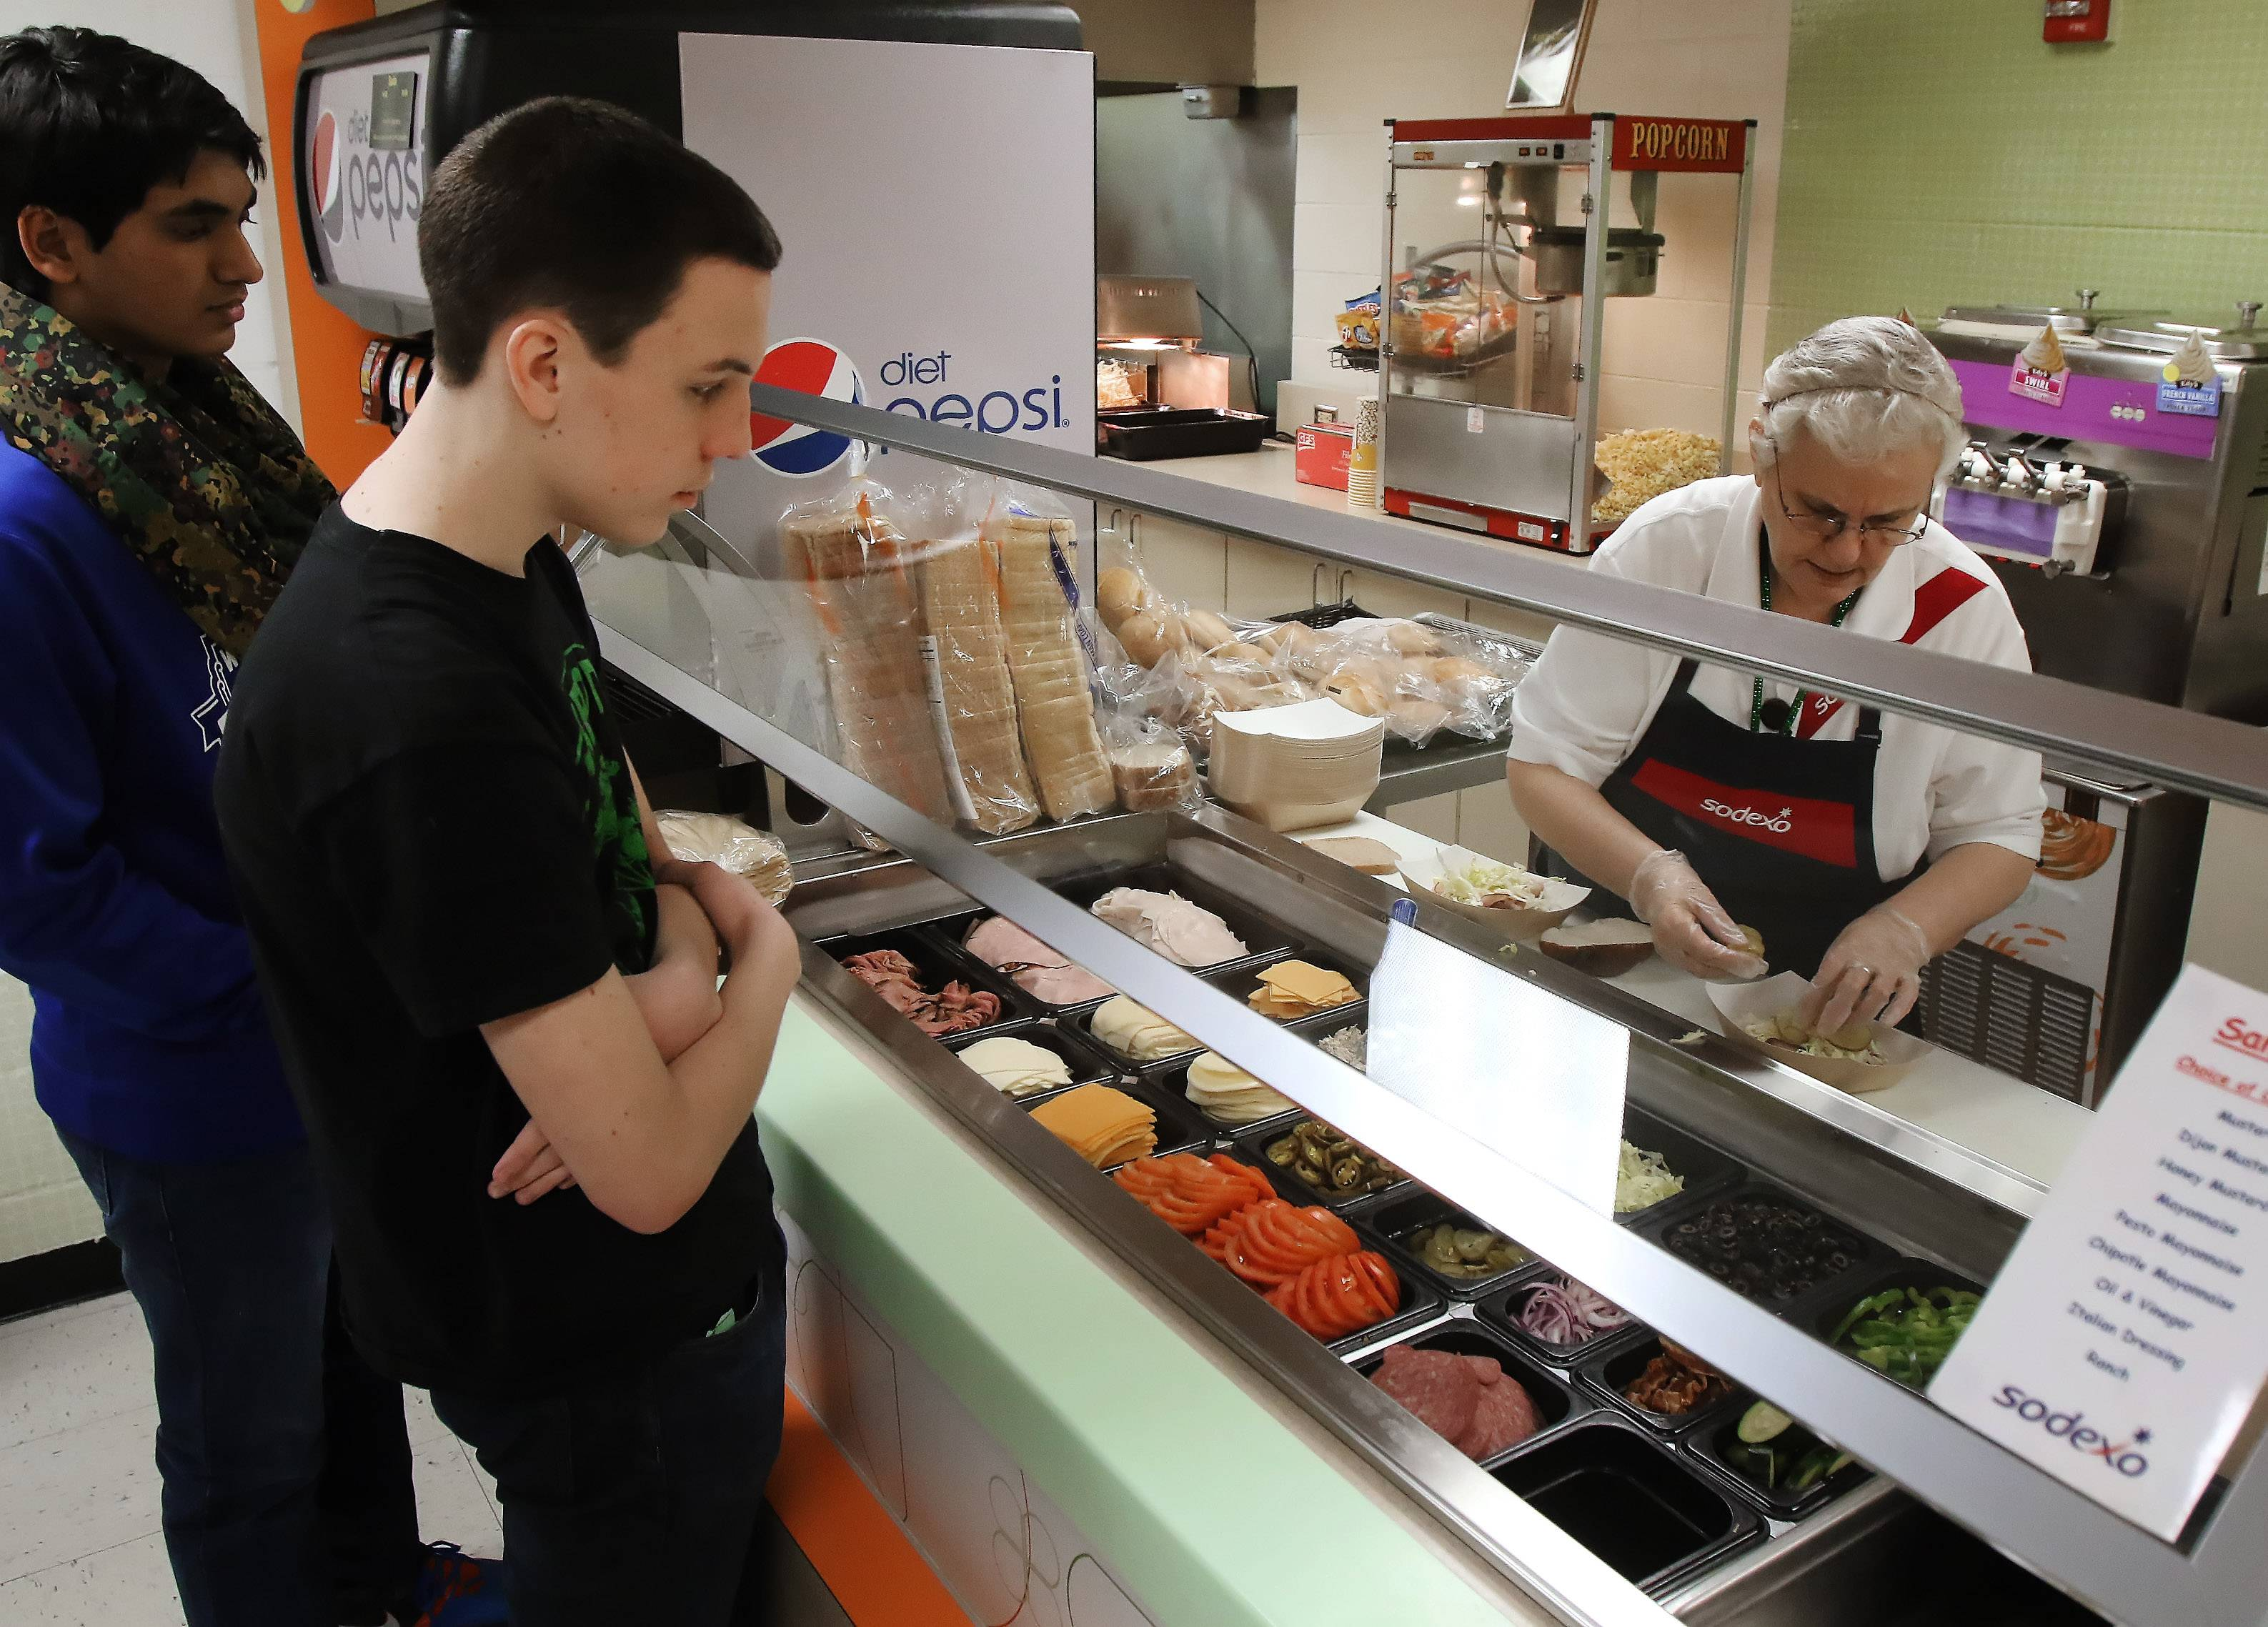 Stevenson High School junior Edward Kosinsky watches his sandwich made by Sodexo employee Kaliopi Gjermani at the Lincolnshire school Tuesday. Stevenson will offer healthier lunch options next year launched by Sodexo called Mindful menu.